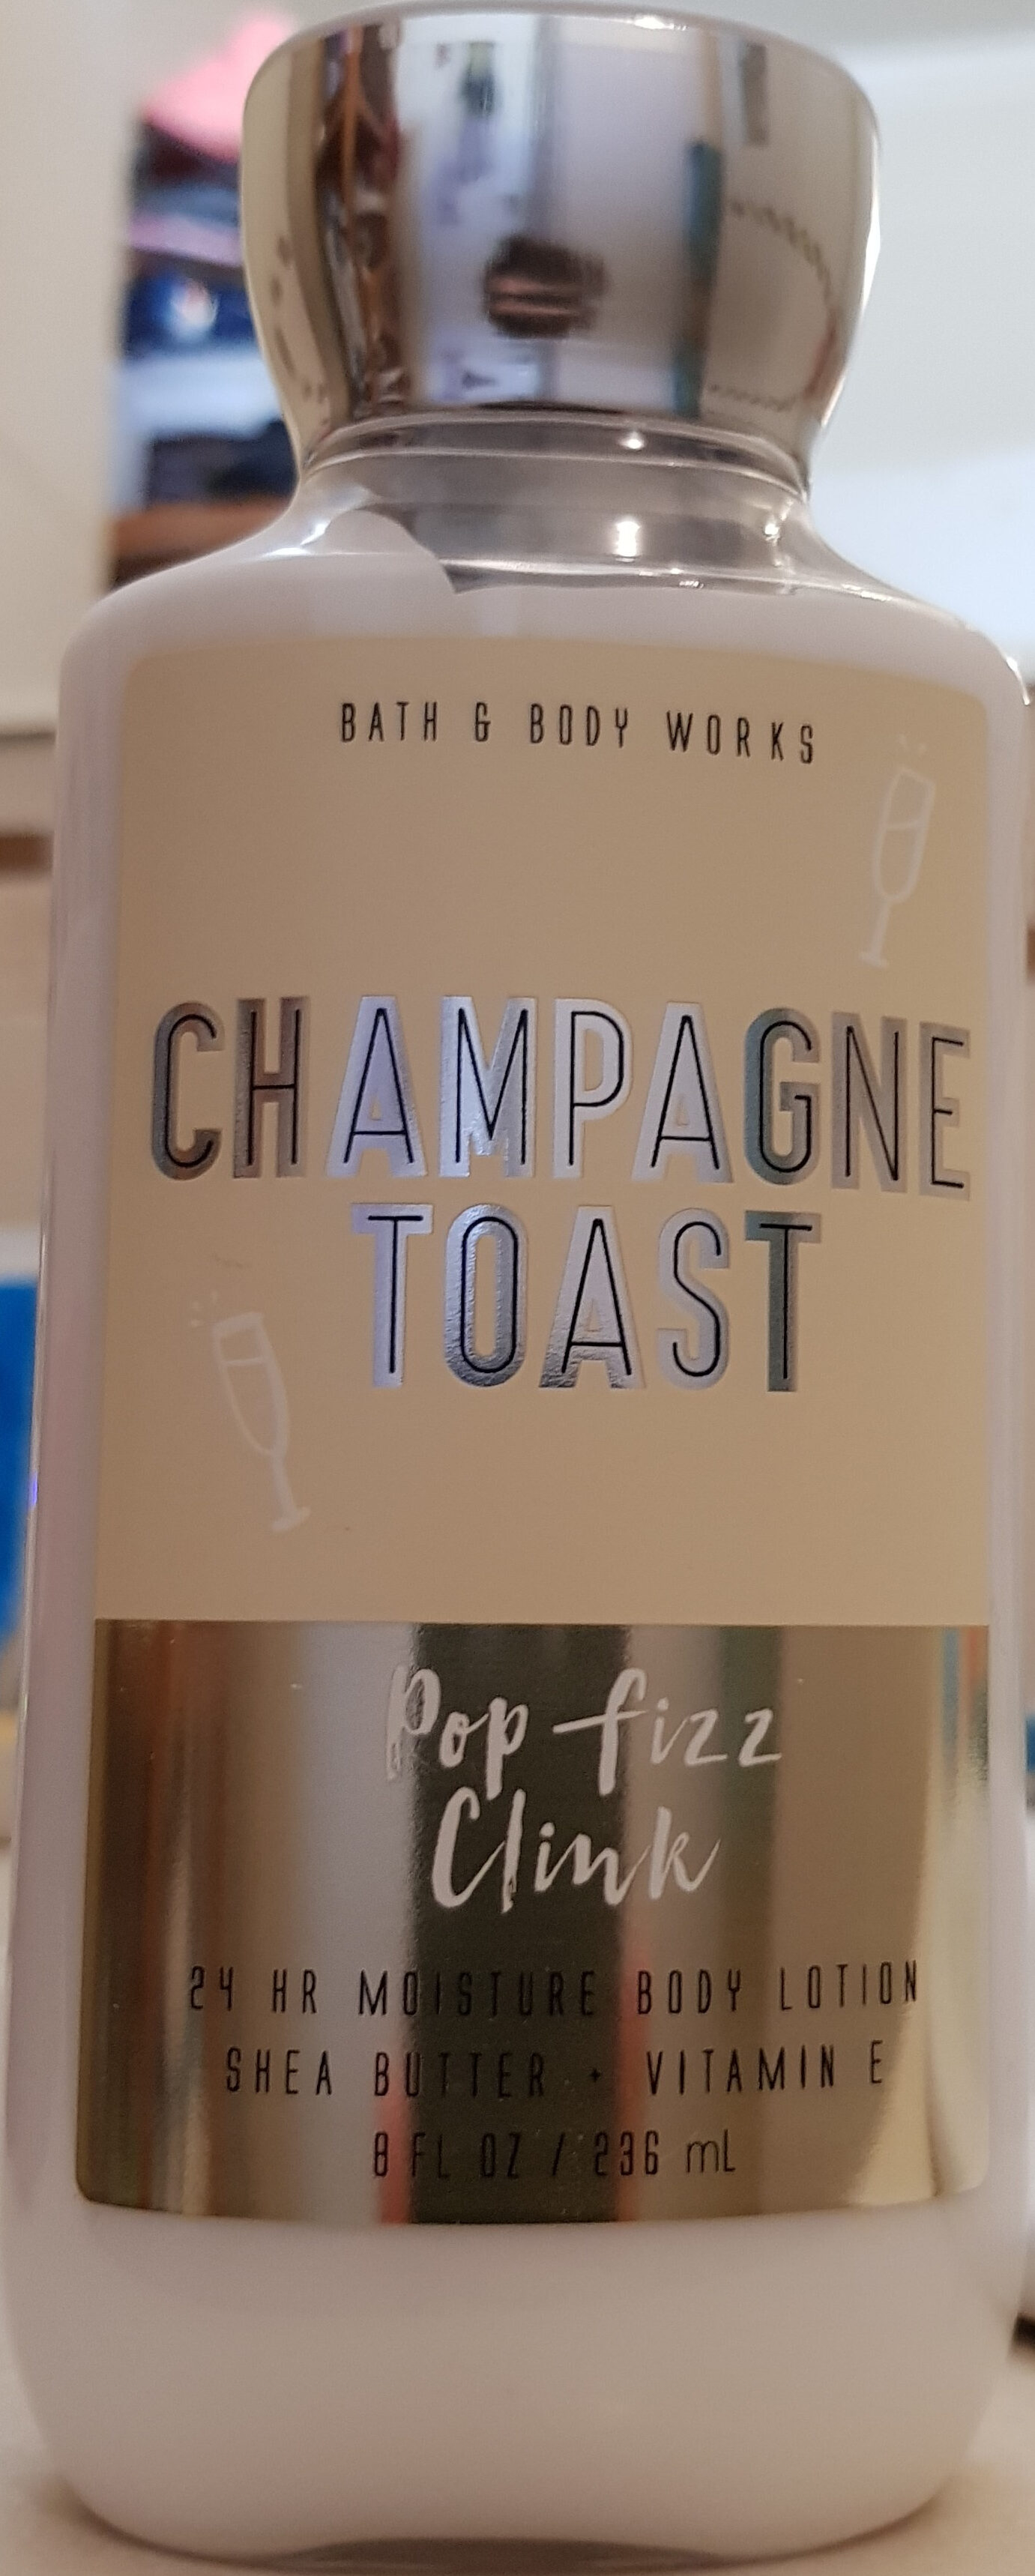 Champagne toast body lotion - Product - fr